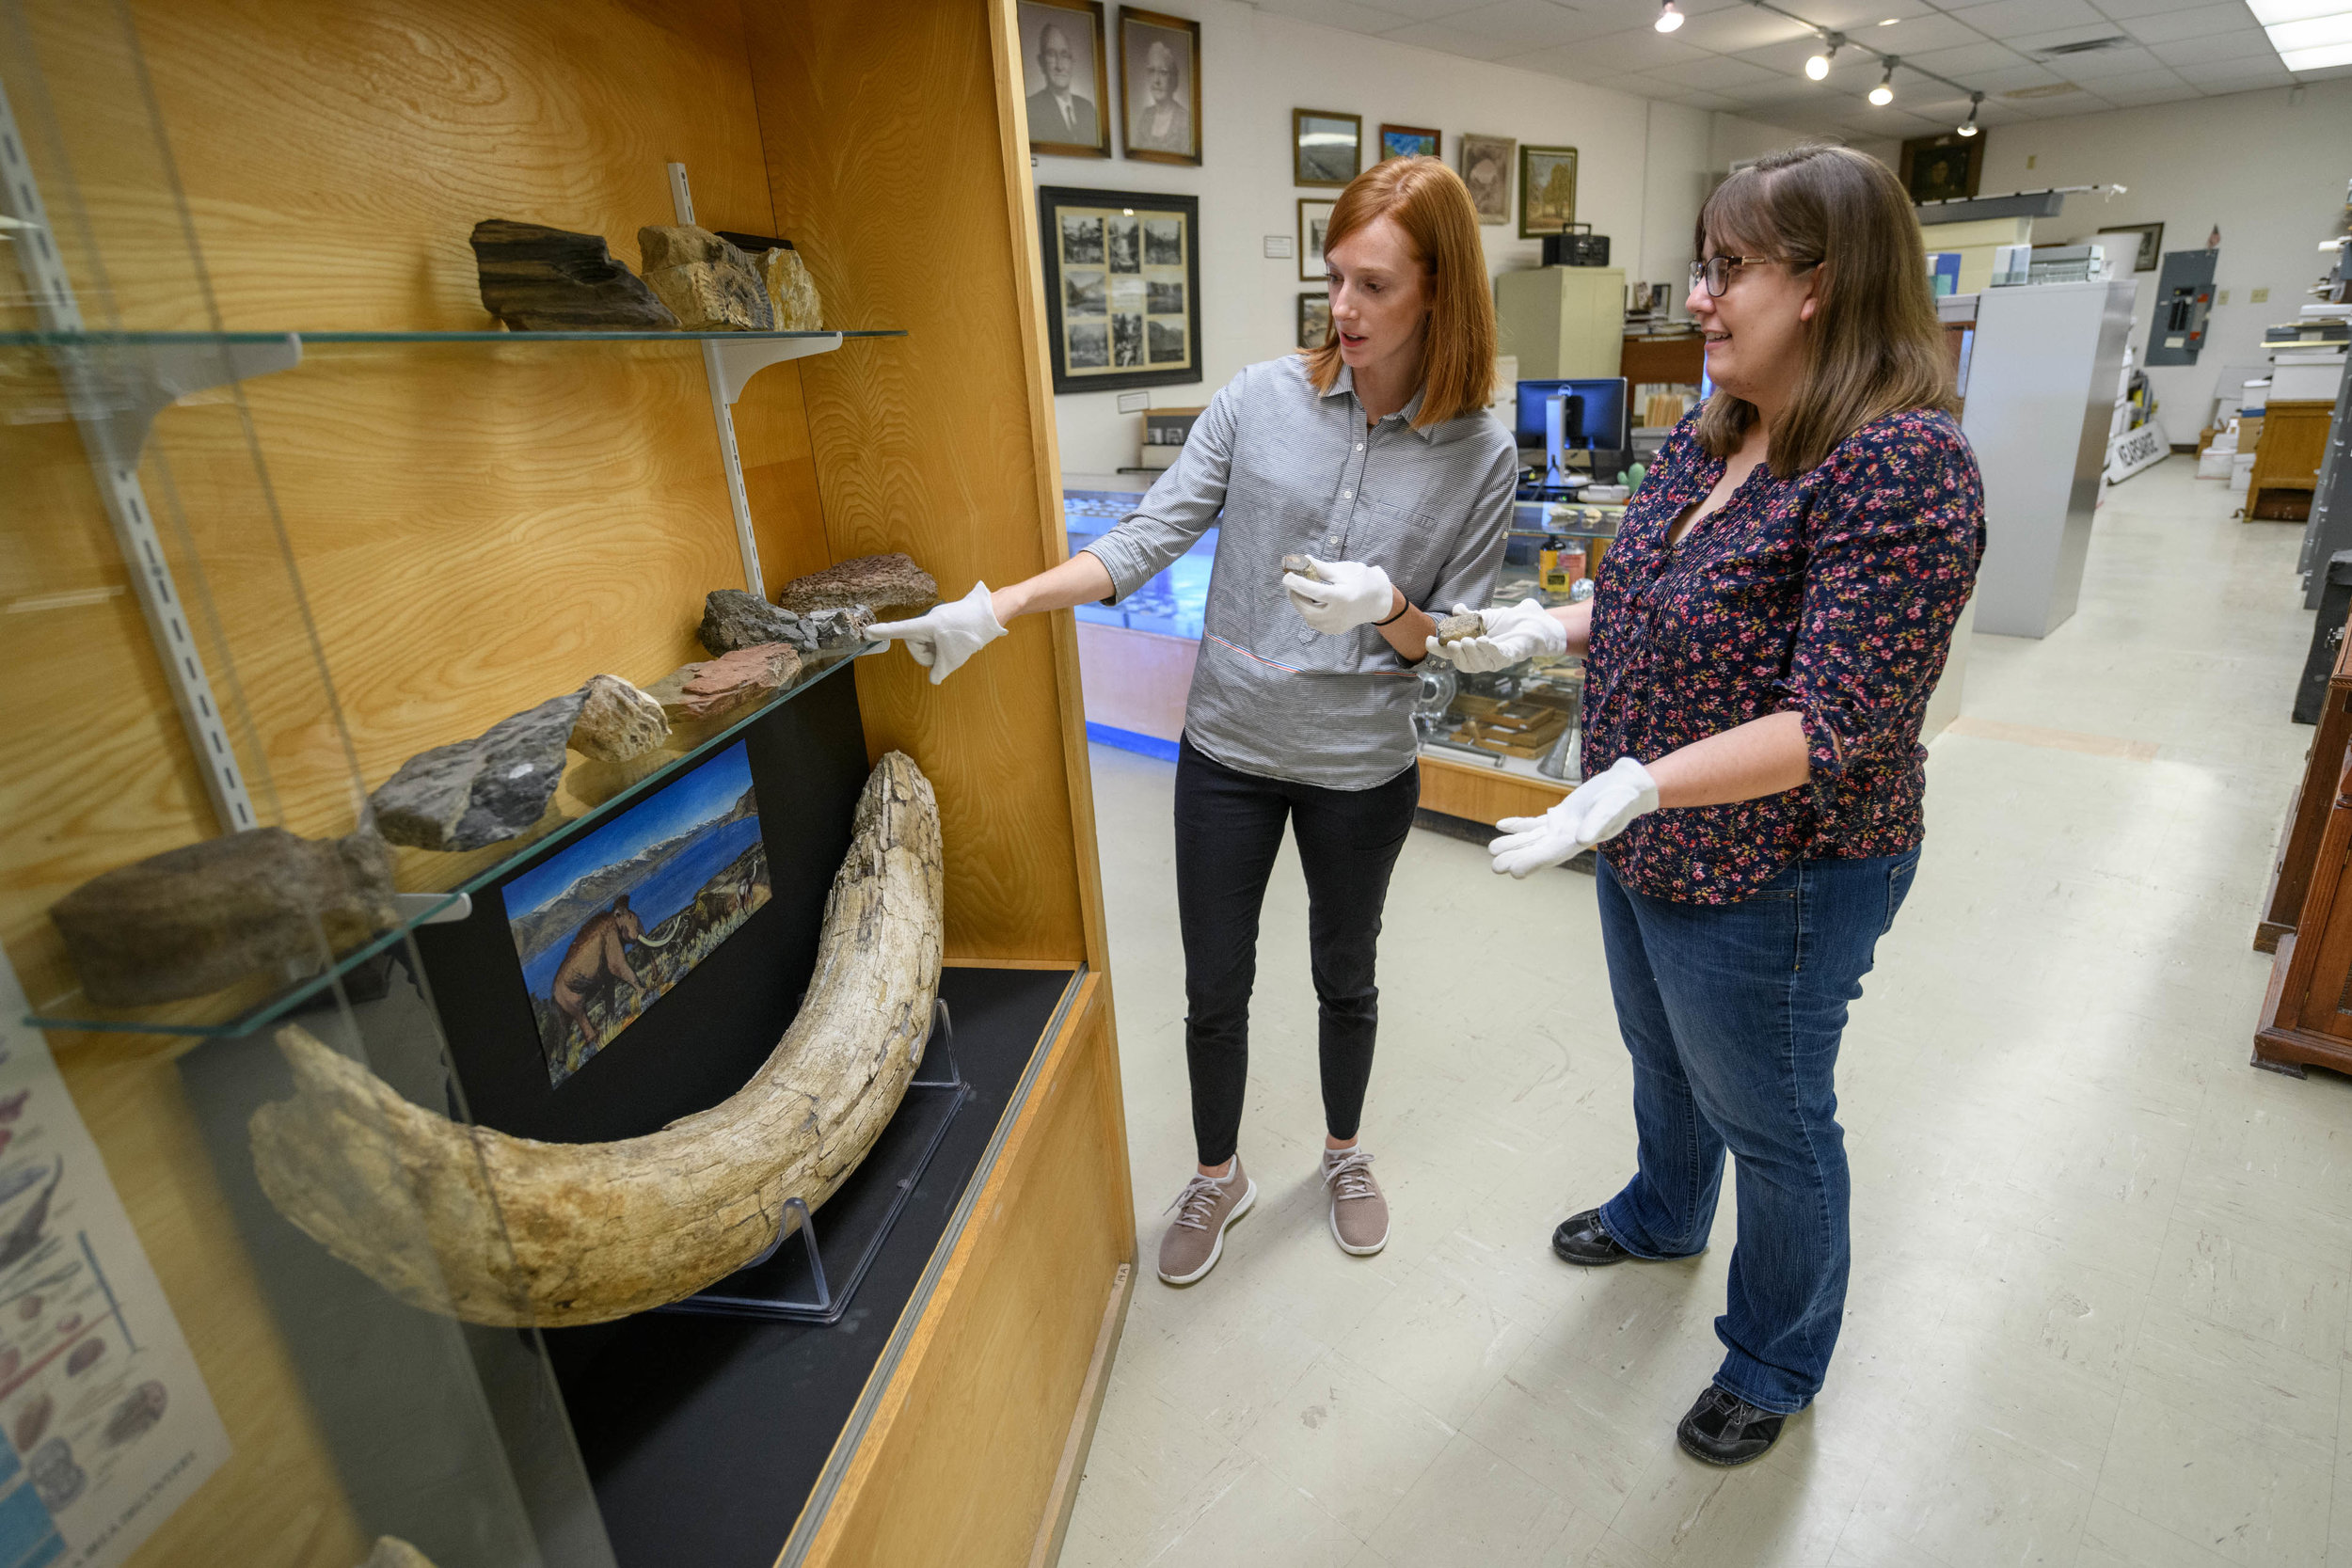 Jessica Johnson, LADWP Public Relations Specialist, left, and Heather Todd, Eastern California Museum Curator of Collections and Exhibits, examine the specimens in the museum's Fossil Case, which includes the recently installed proboscidean tusk and artwork. Photo courtesy LADWP